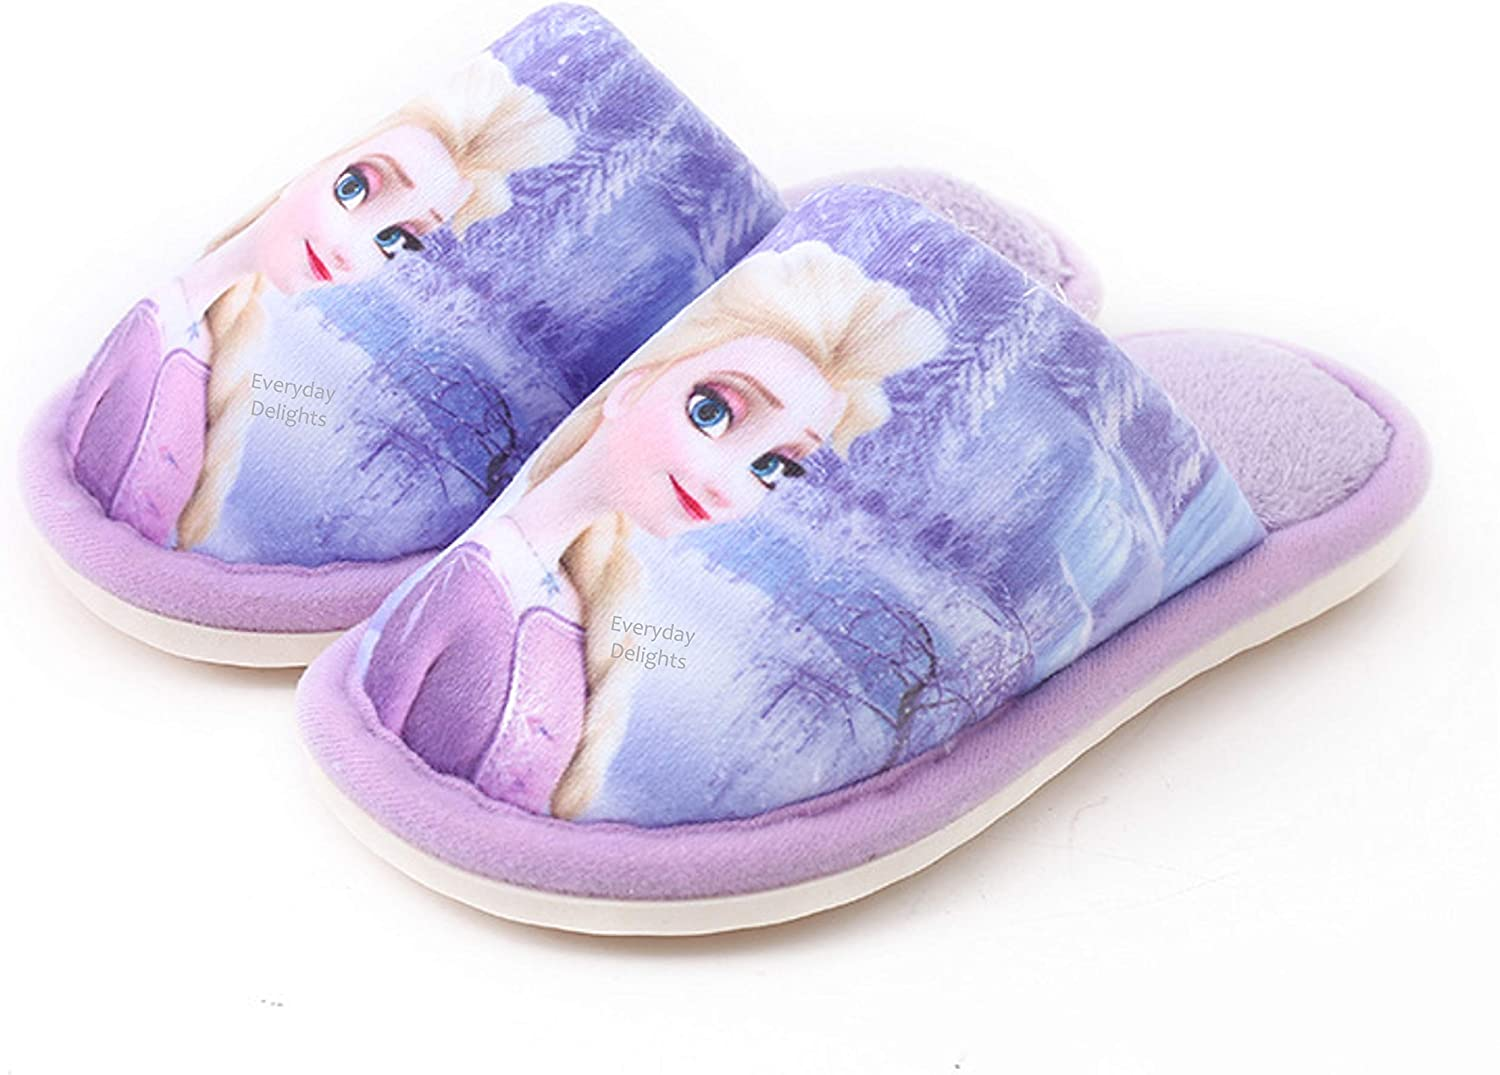 Disney Frozen II Elsa Plush Slippers Some reservation for Chi Kids Toddlers Girls Max 72% OFF